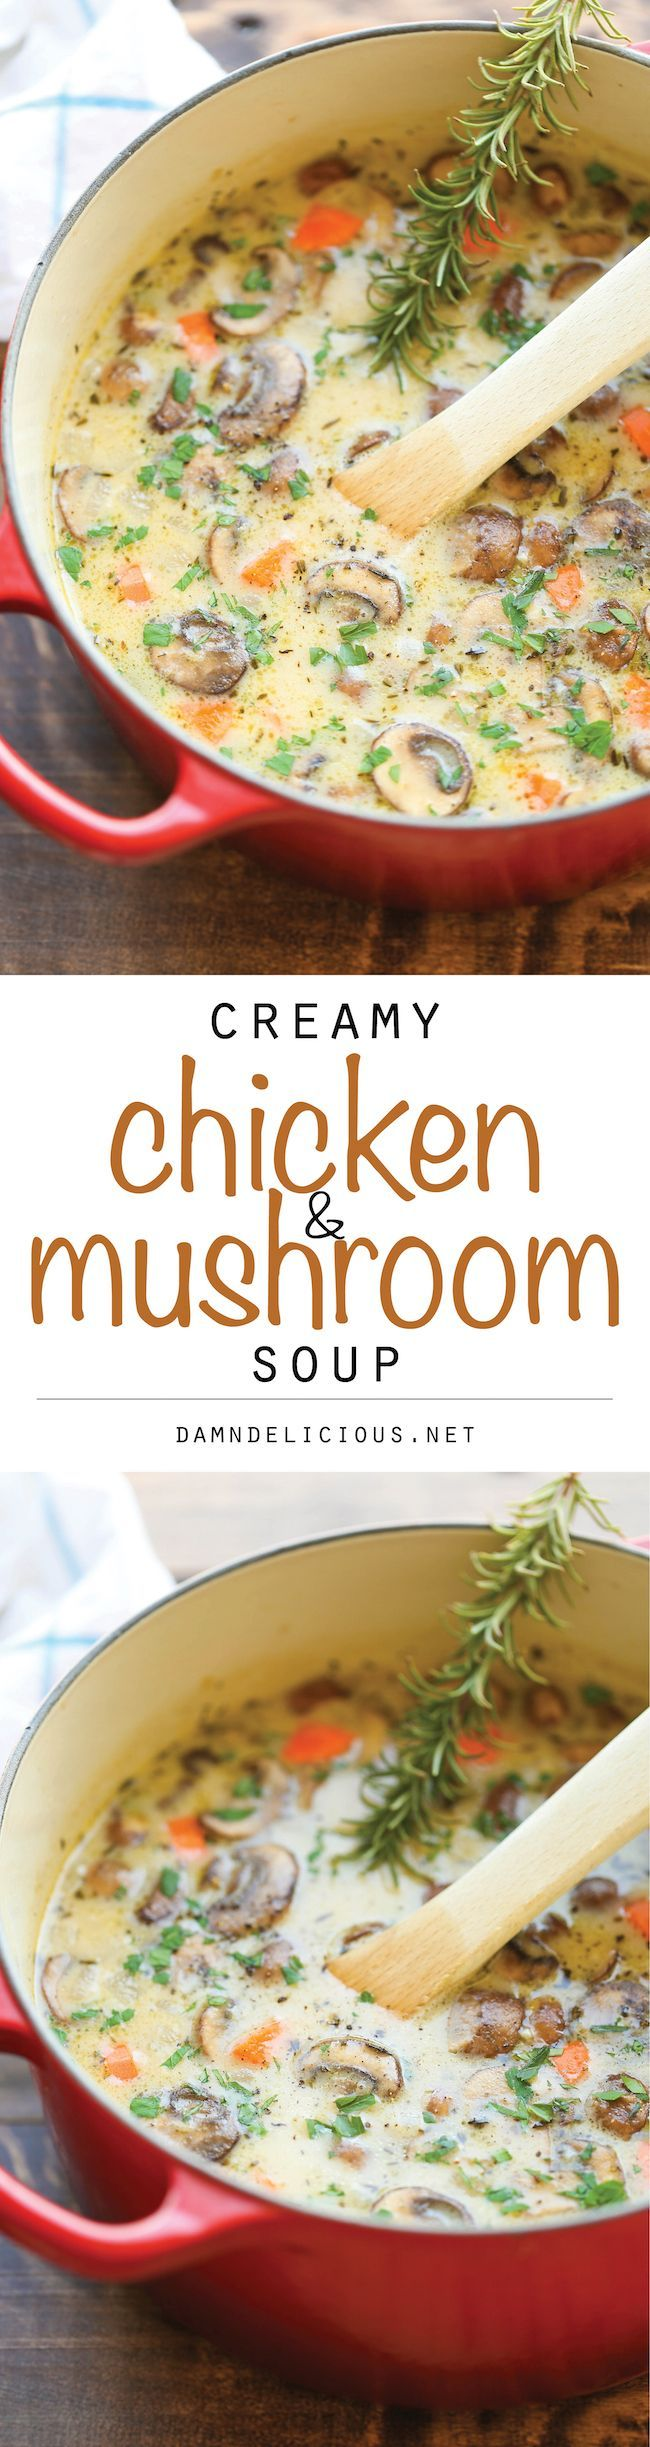 Chicken and Mushroom Soup Creamy Chicken and Mushroom Soup - So cozy, so comforting and just so creamy. Best of all, this is made in 30 min from start to finish - so quick and easy!Creamy Chicken and Mushroom Soup - So cozy, so comforting and just so creamy. Best of all, this is made in 30 min from start to finish - so quick and easy!